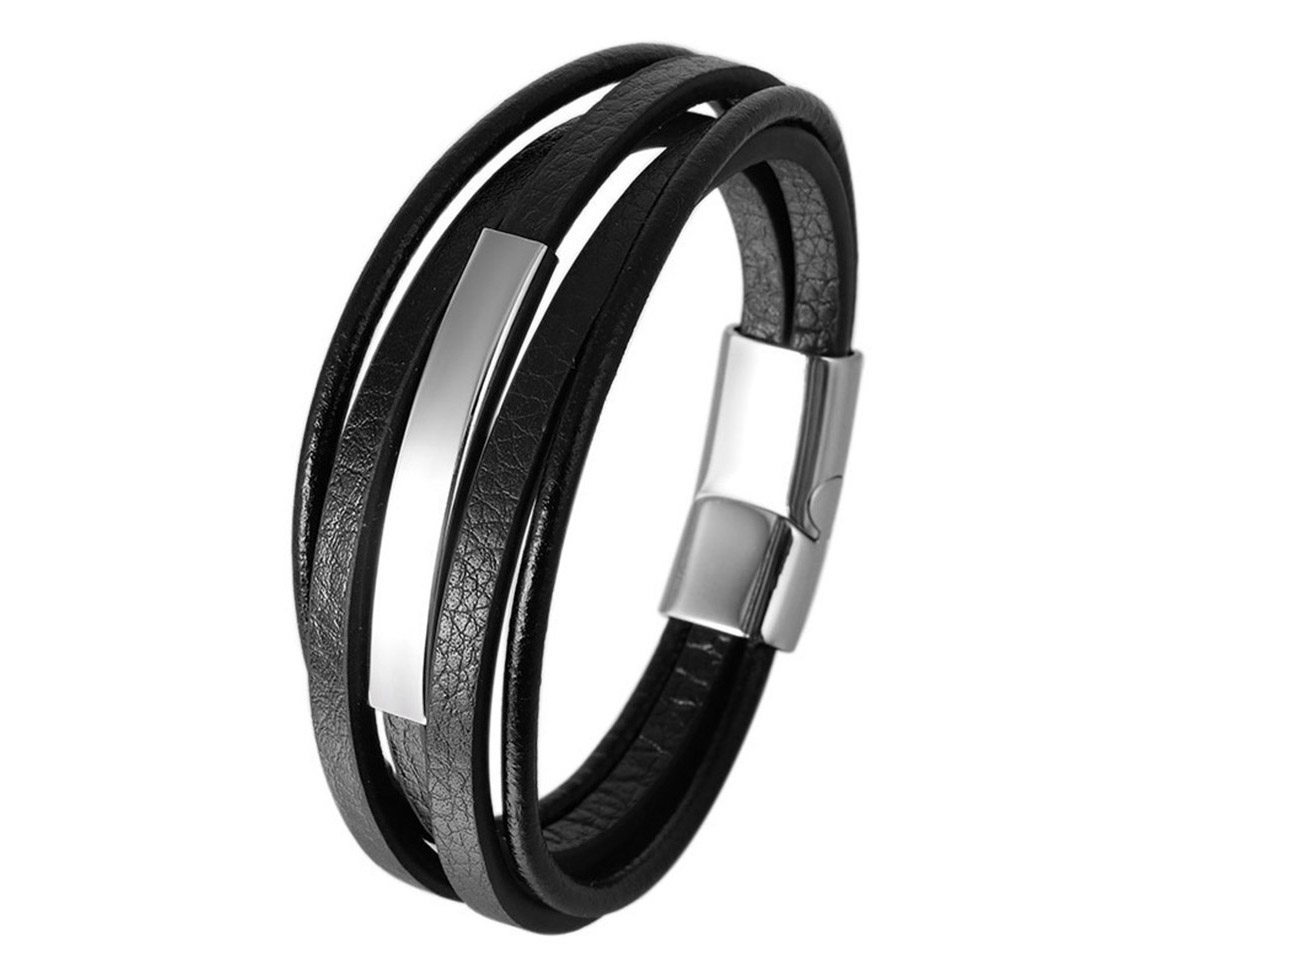 SSB0141R Multi Layer Leather Magnetic Clasp Stainless Steel